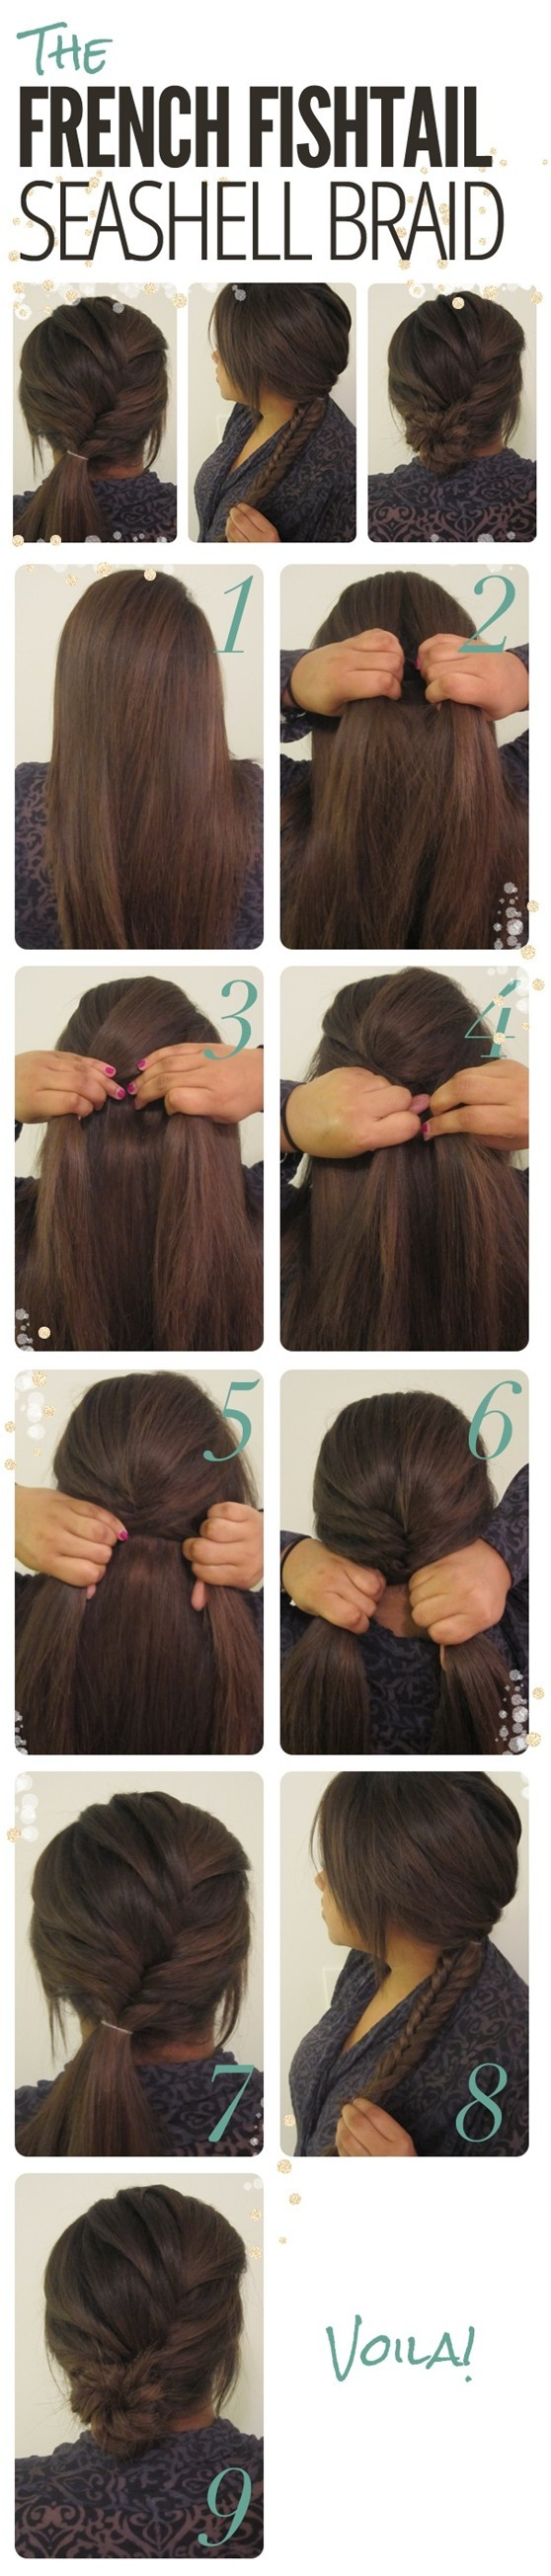 Braided Updo Hairstyles Tutorials: French fishtail seashell braid